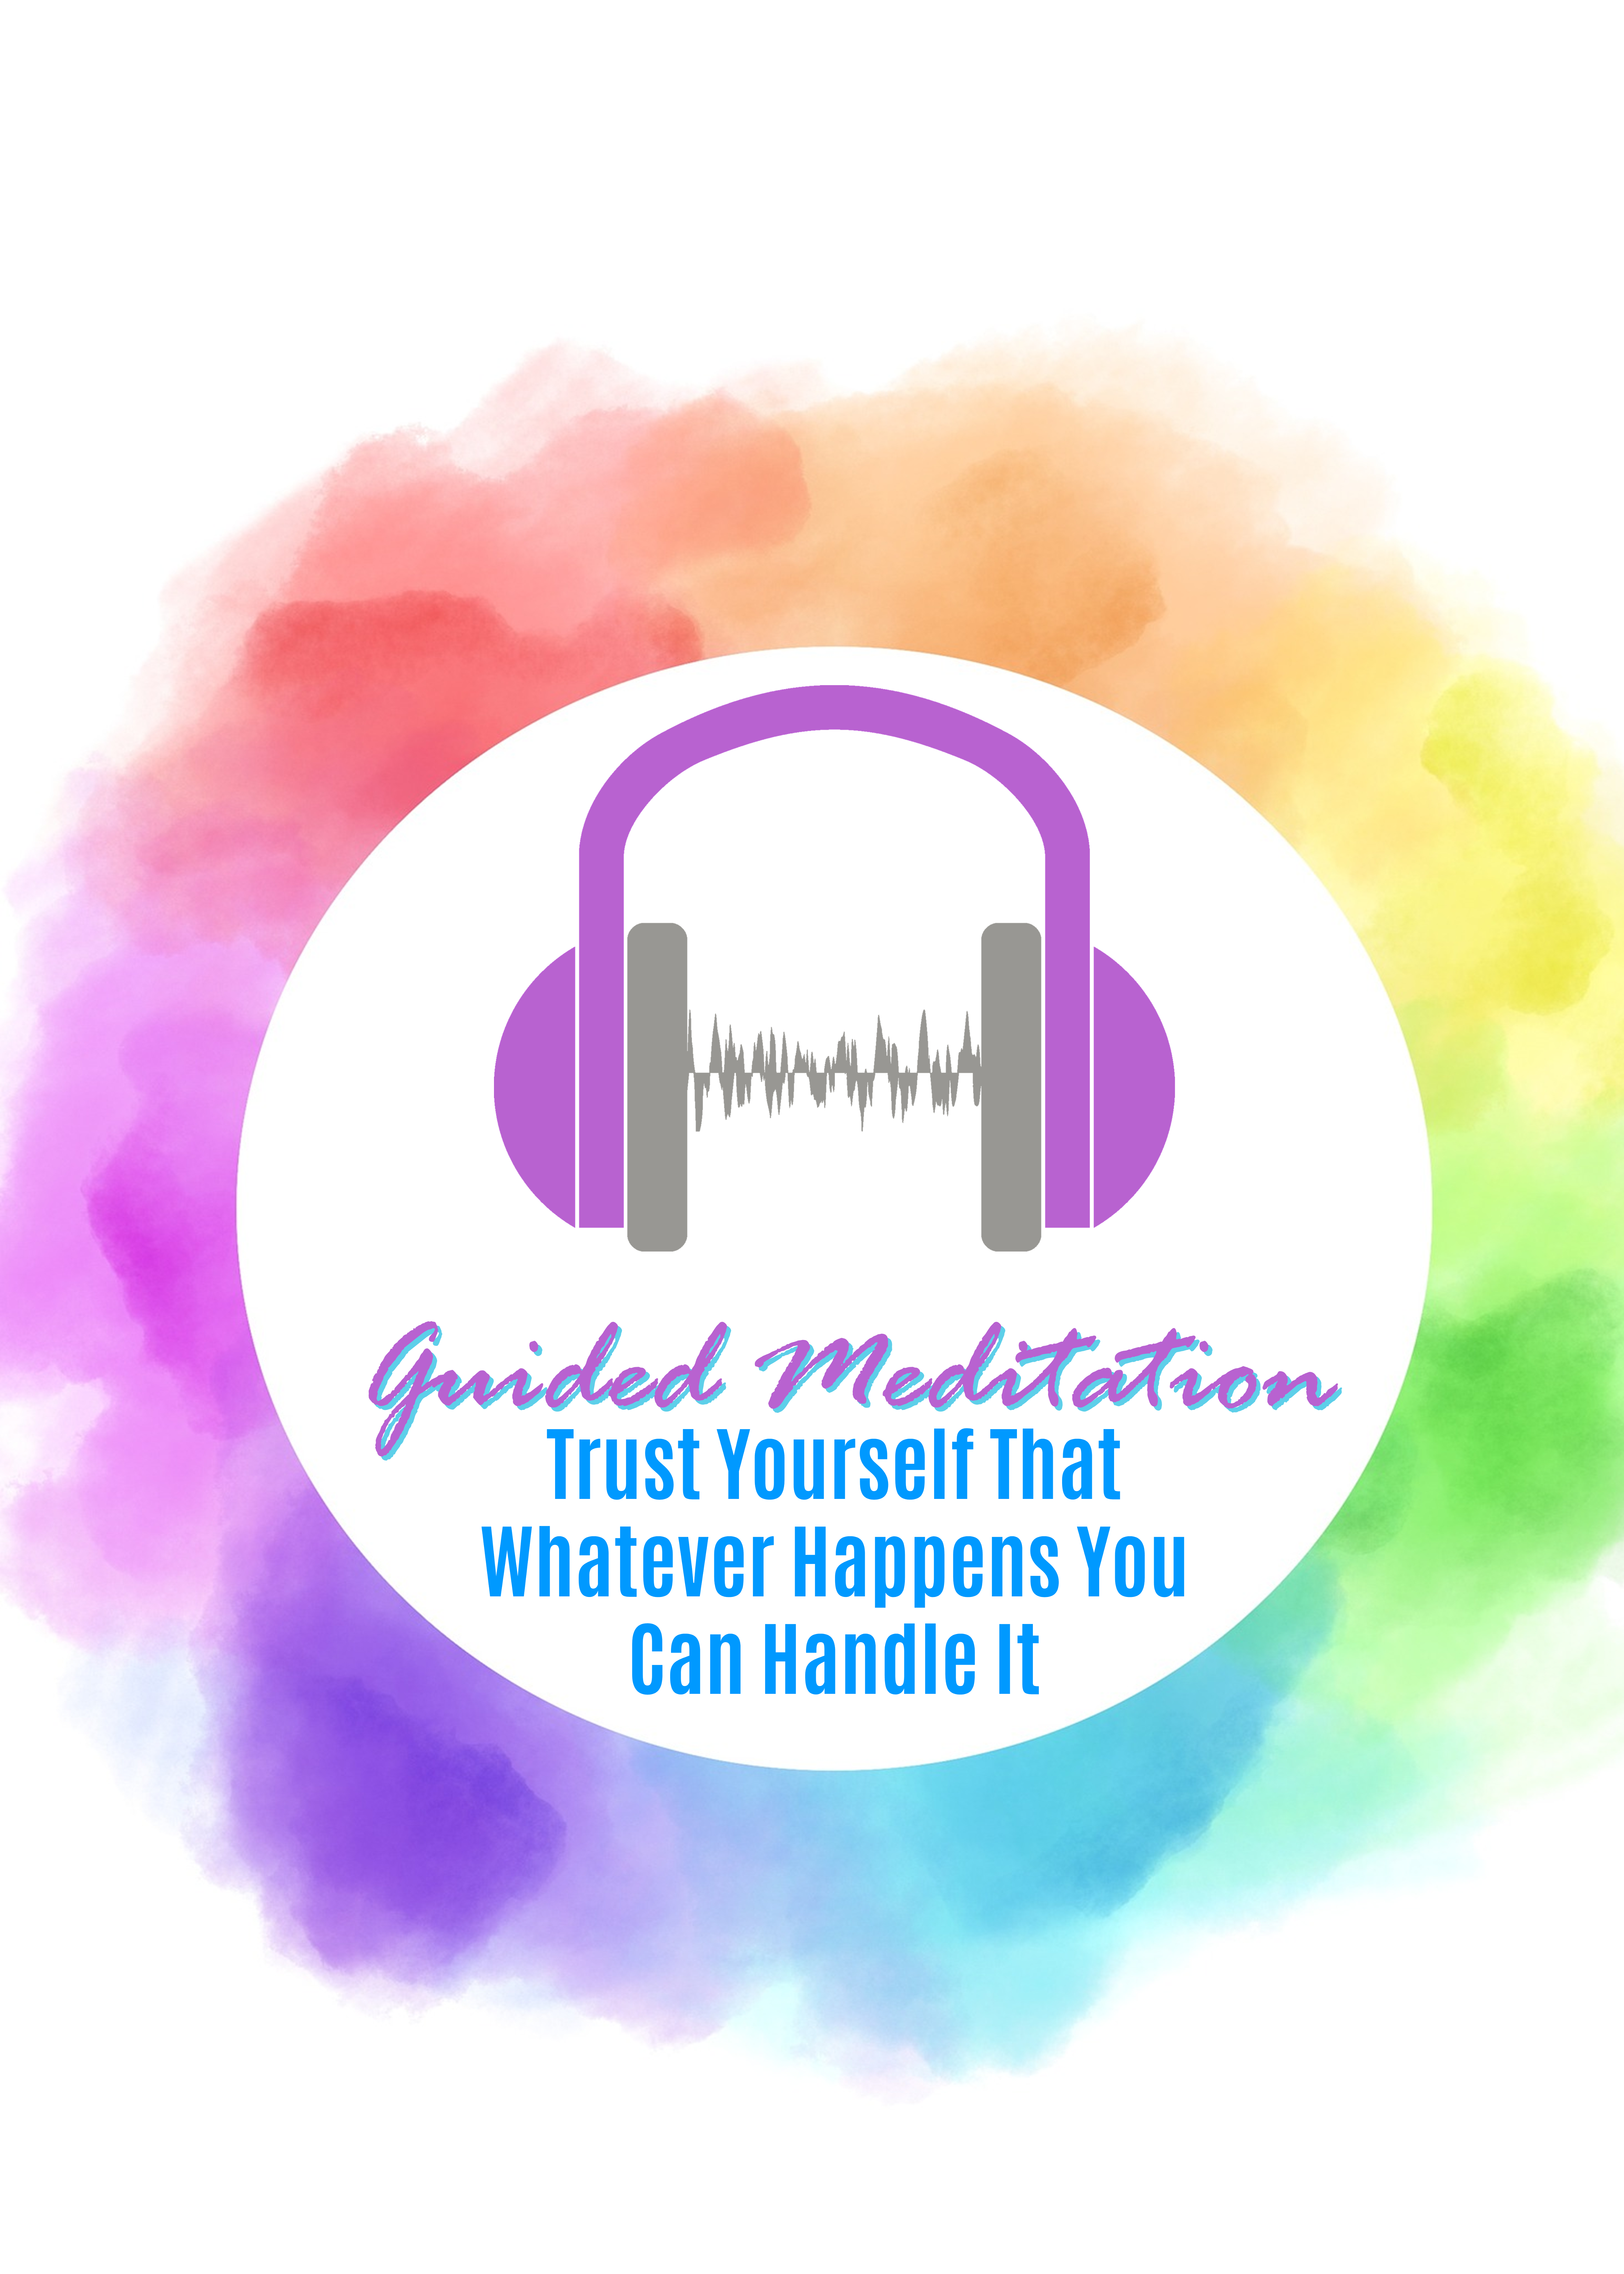 Trust Yourself That Whatever Happens, You'll Handle It Guided Meditation